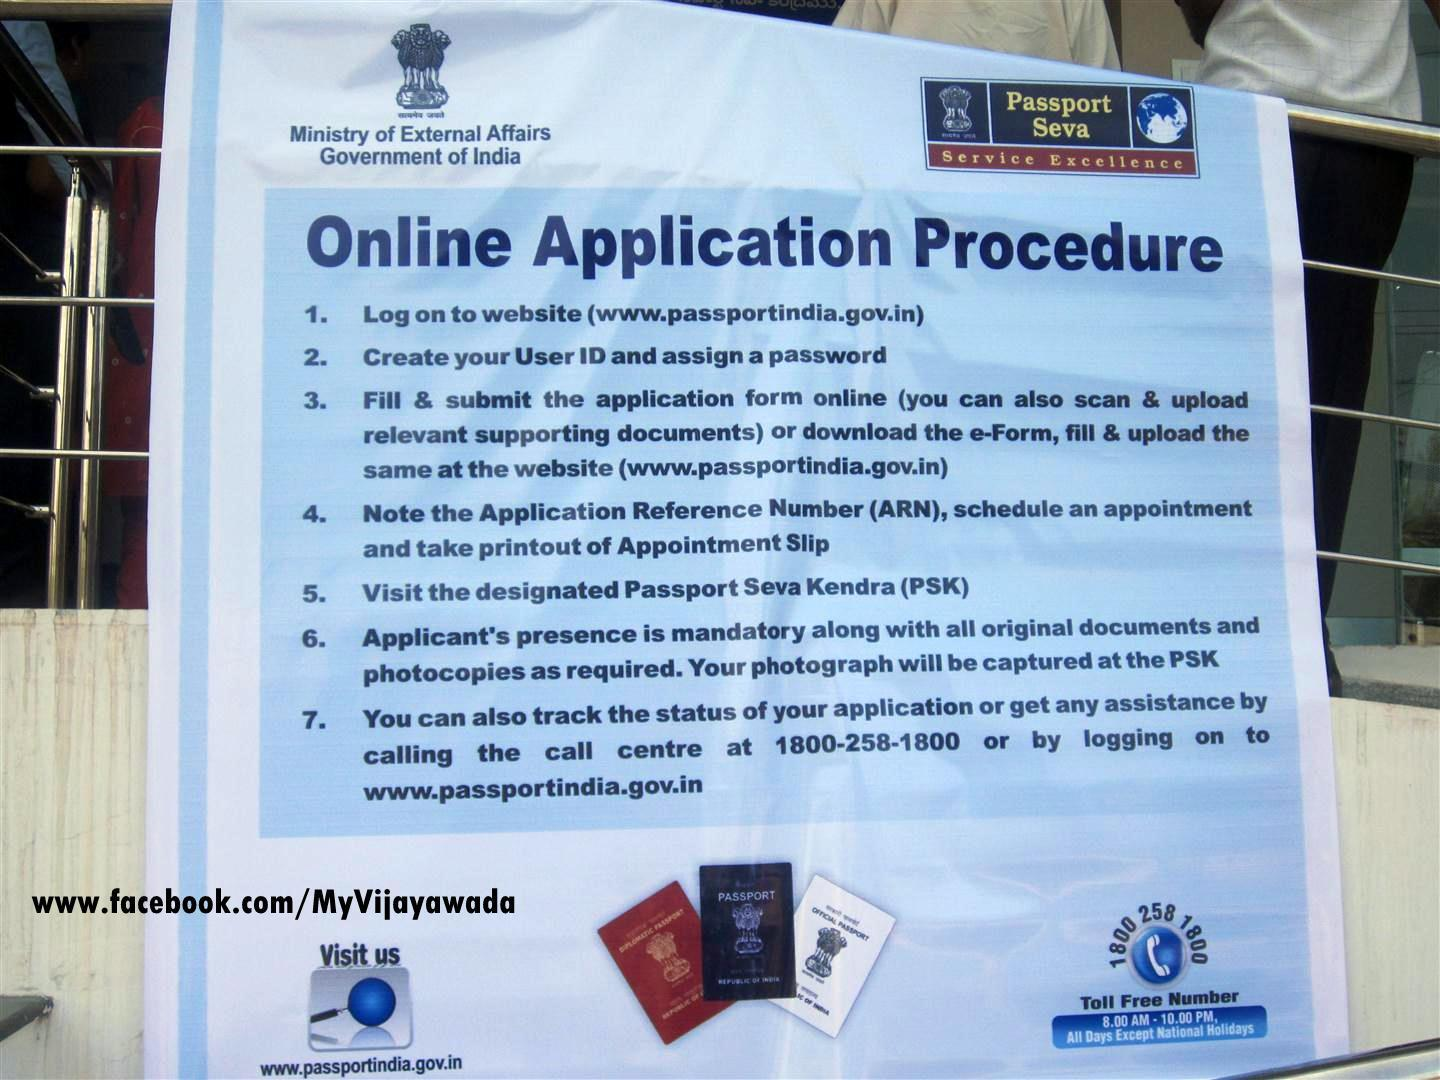 Vijayawada Passport Office & Application Procedure